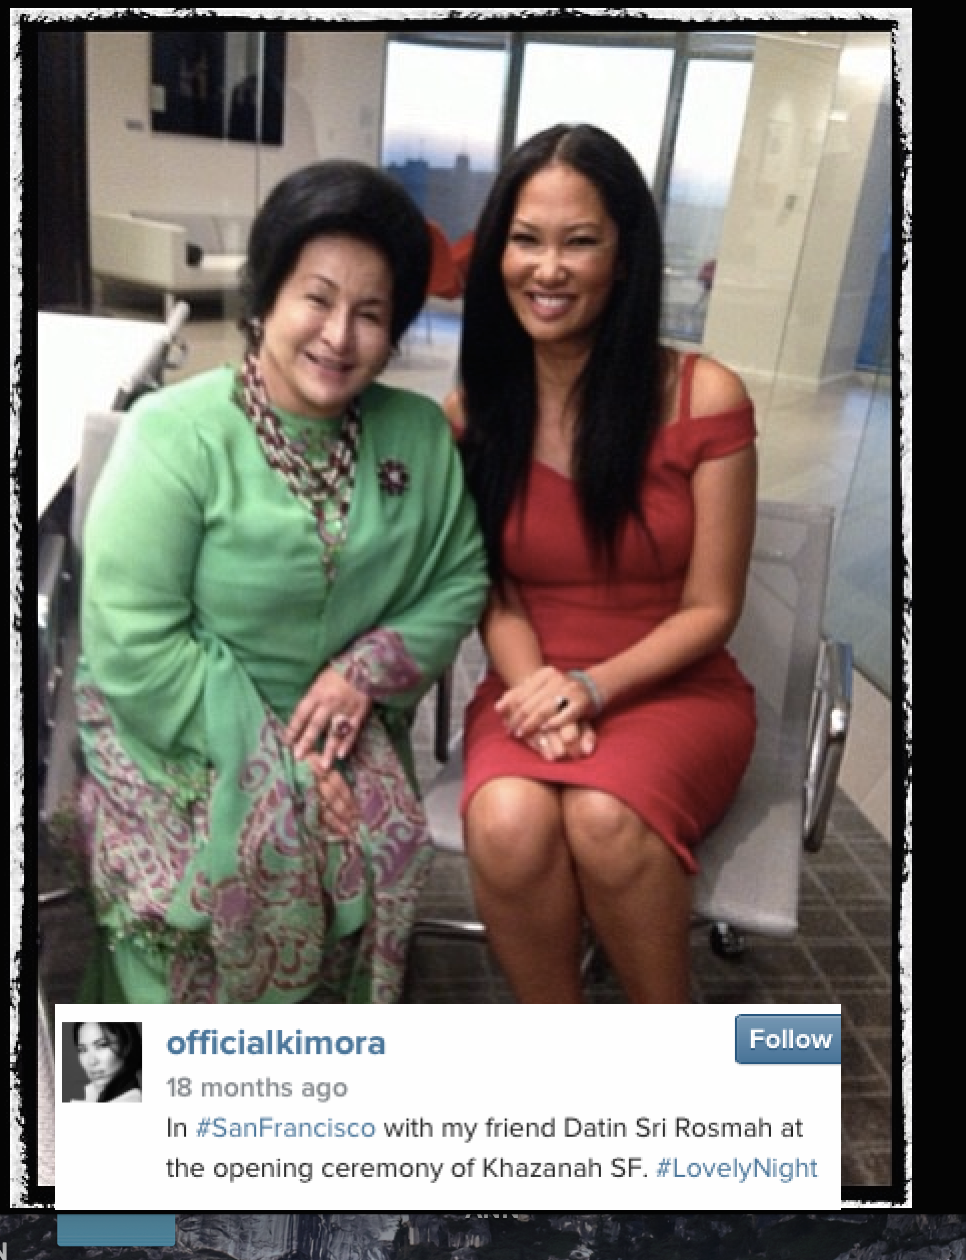 So many close connections. The wife of Goldman Sachs Asia's Tim Leissner and Rosmah Mansor.